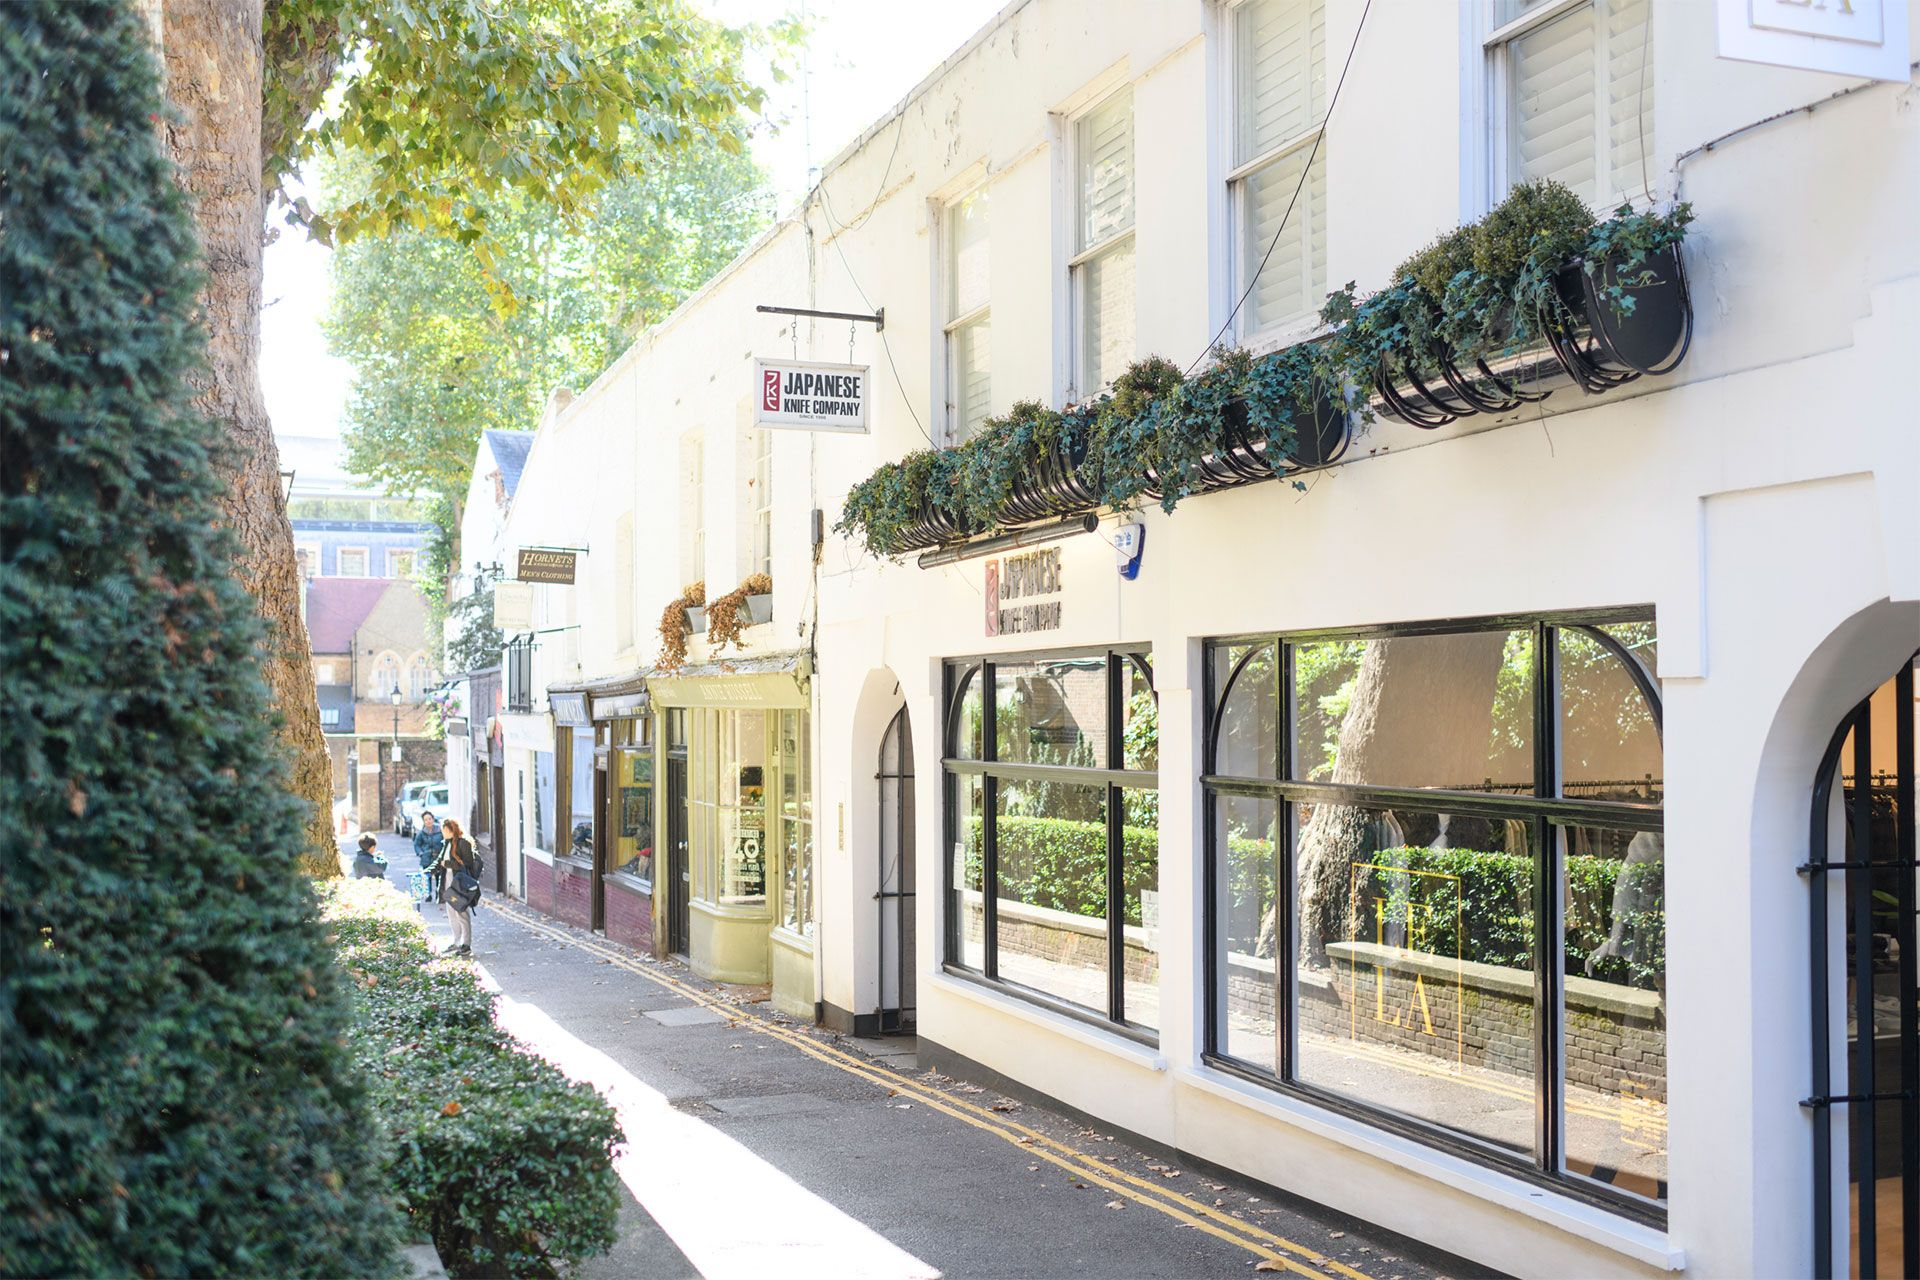 Boutique shops in Kensington London